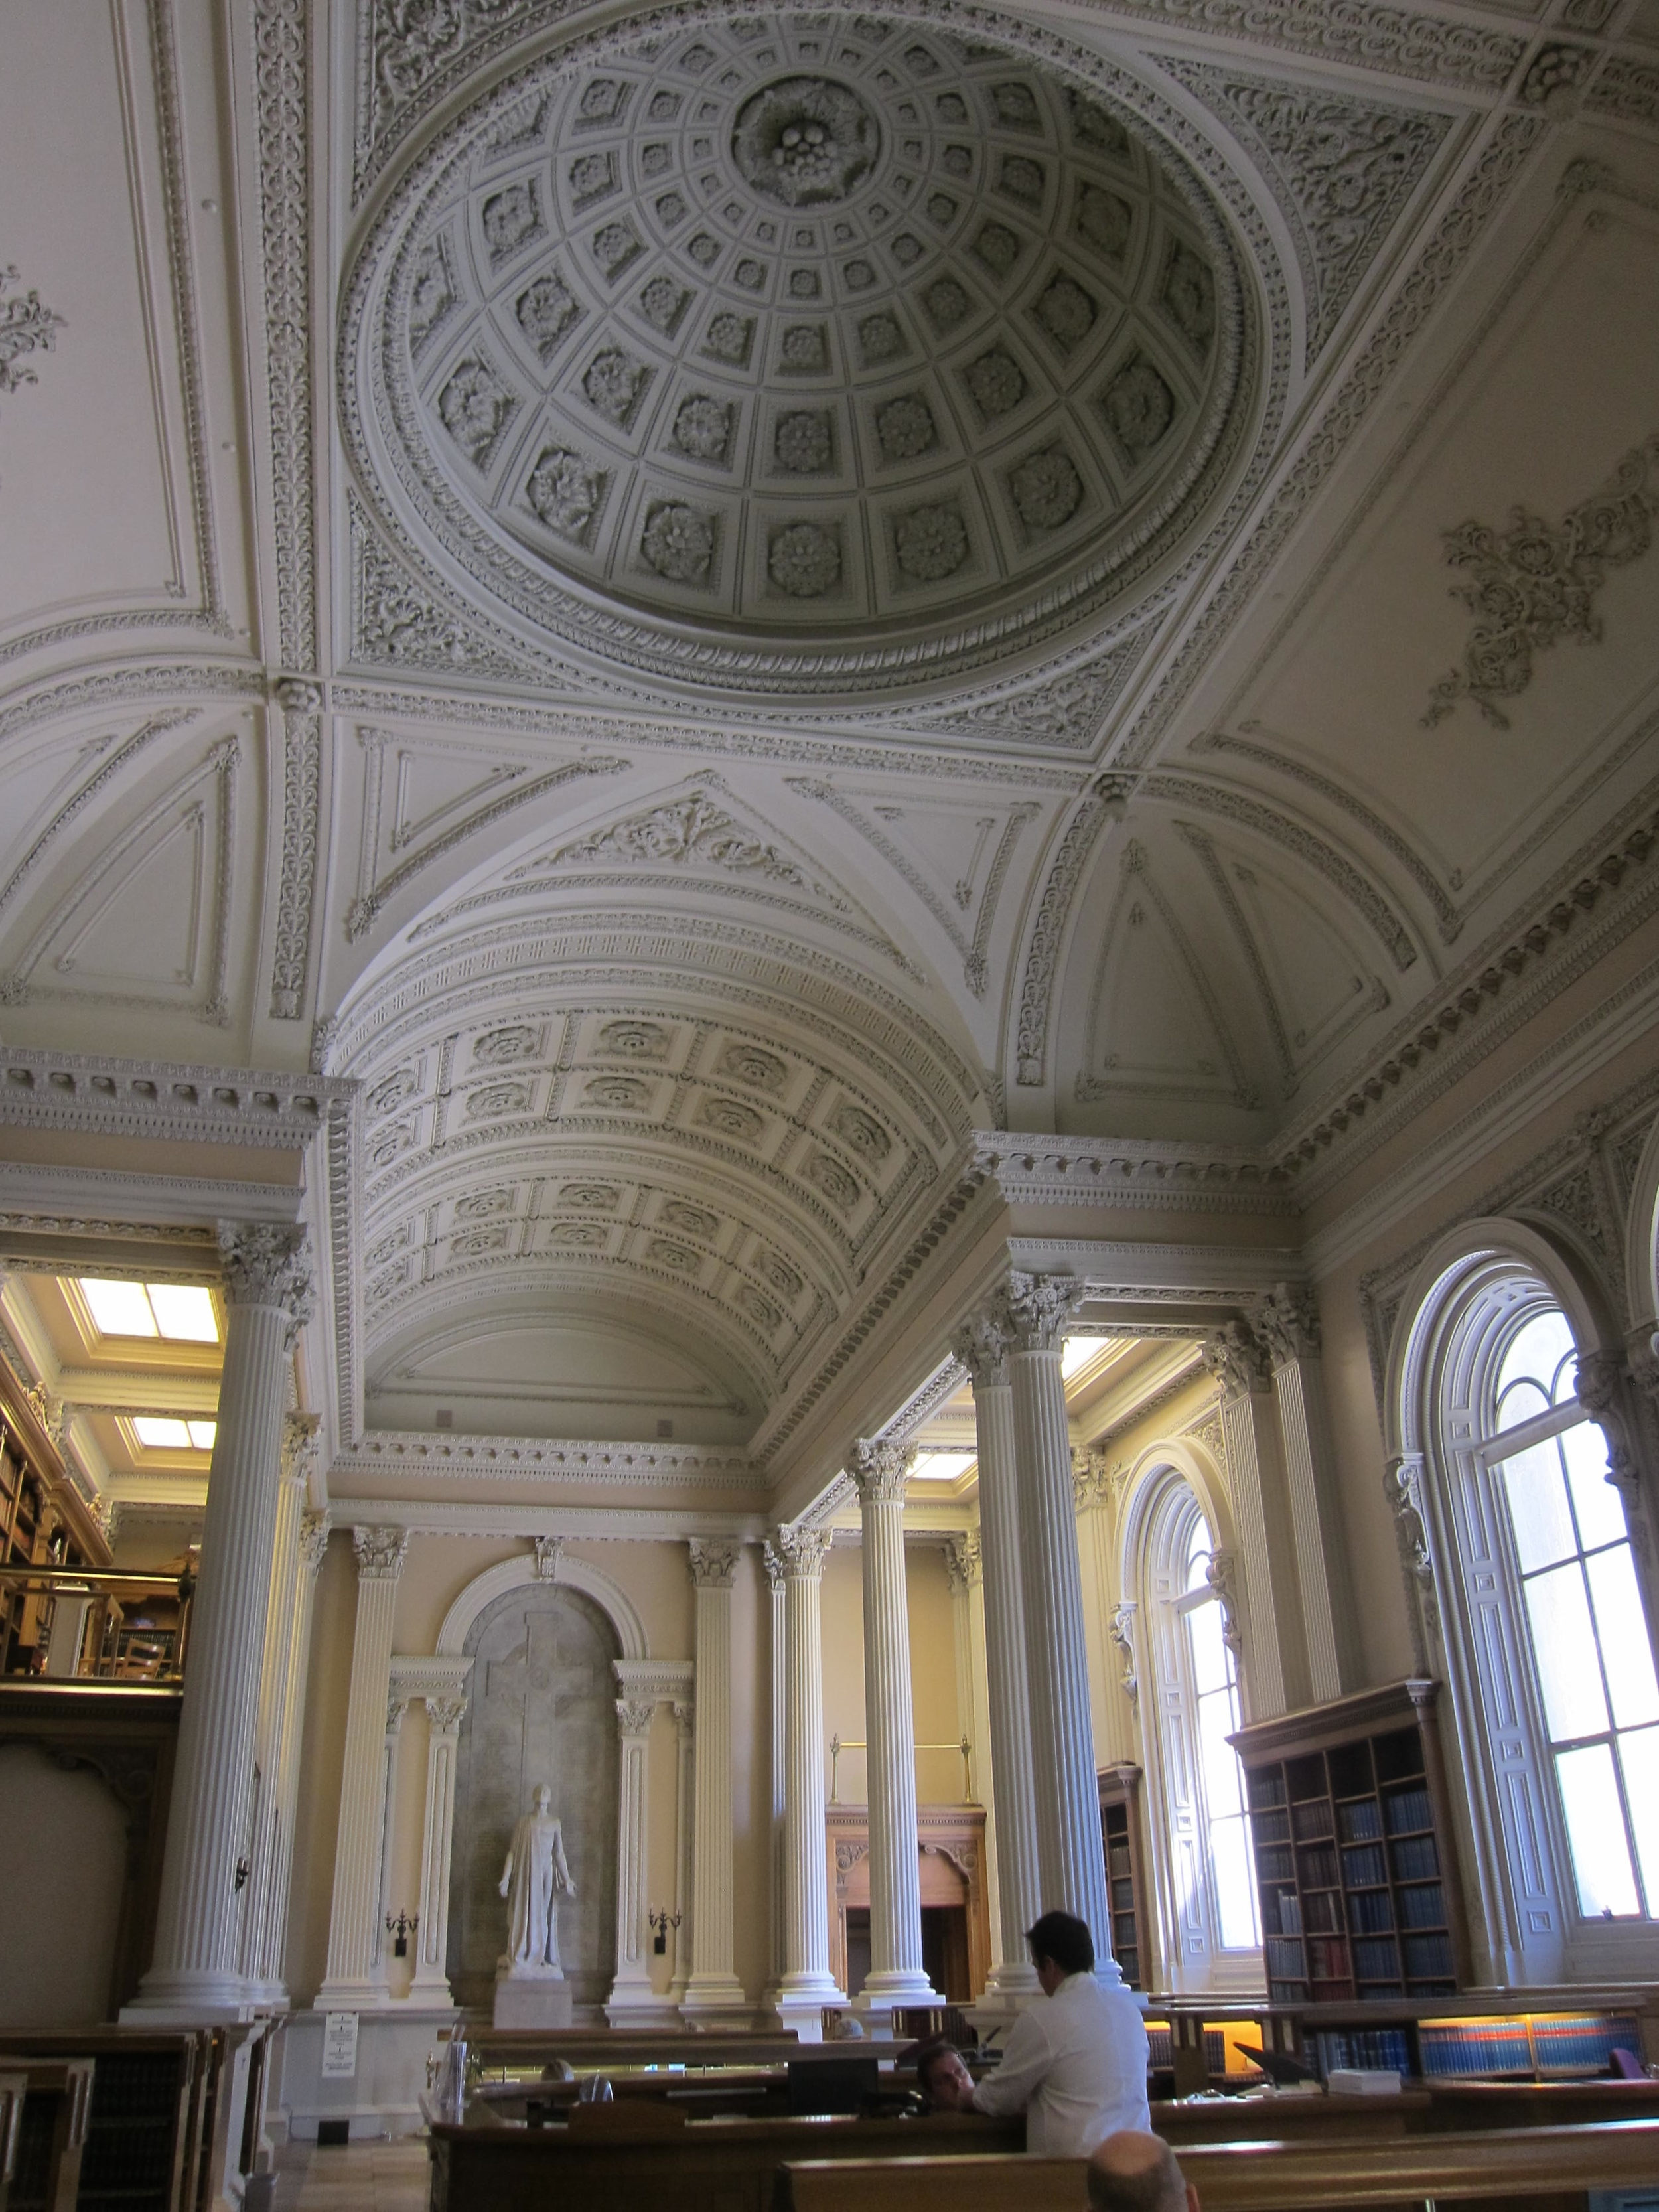 Picture of beautiful ceiling dome design.